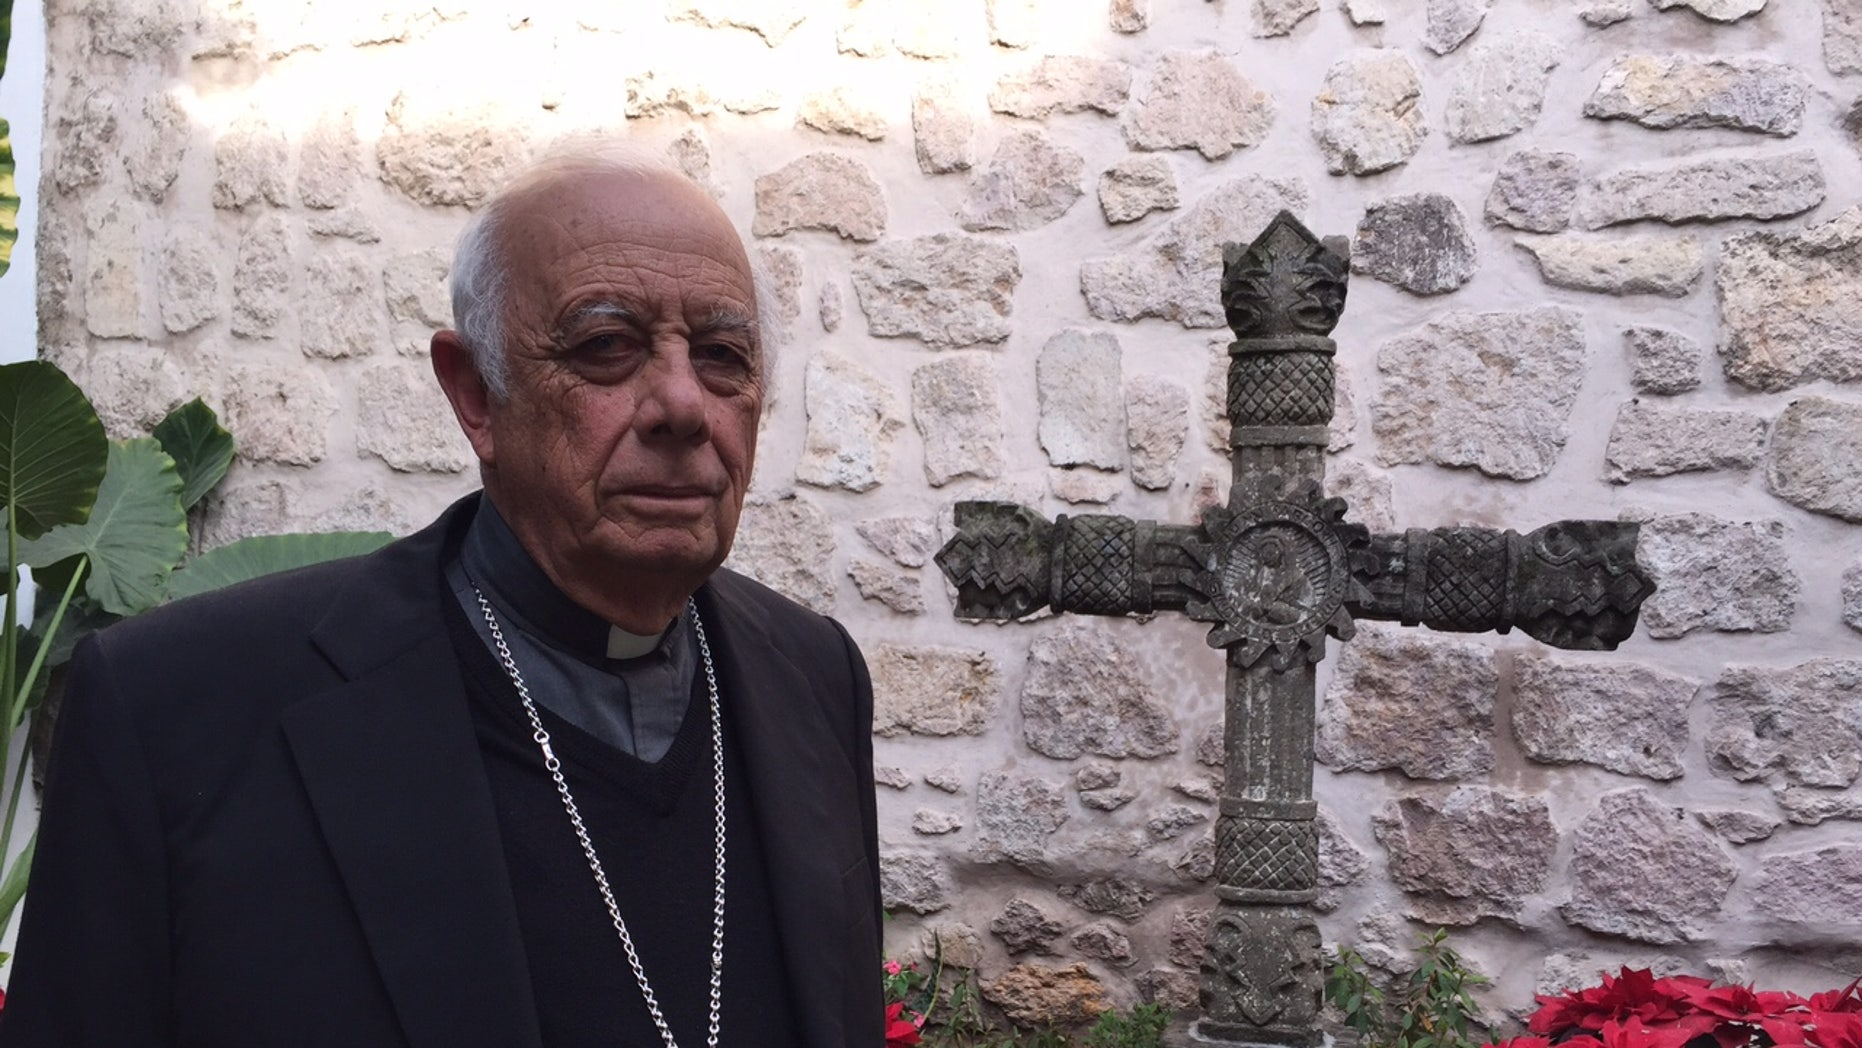 Cardinal-designate Alberto Suarez Inda of Morelia, Mexico lives in a place that has been wracked by drug cartel violence.